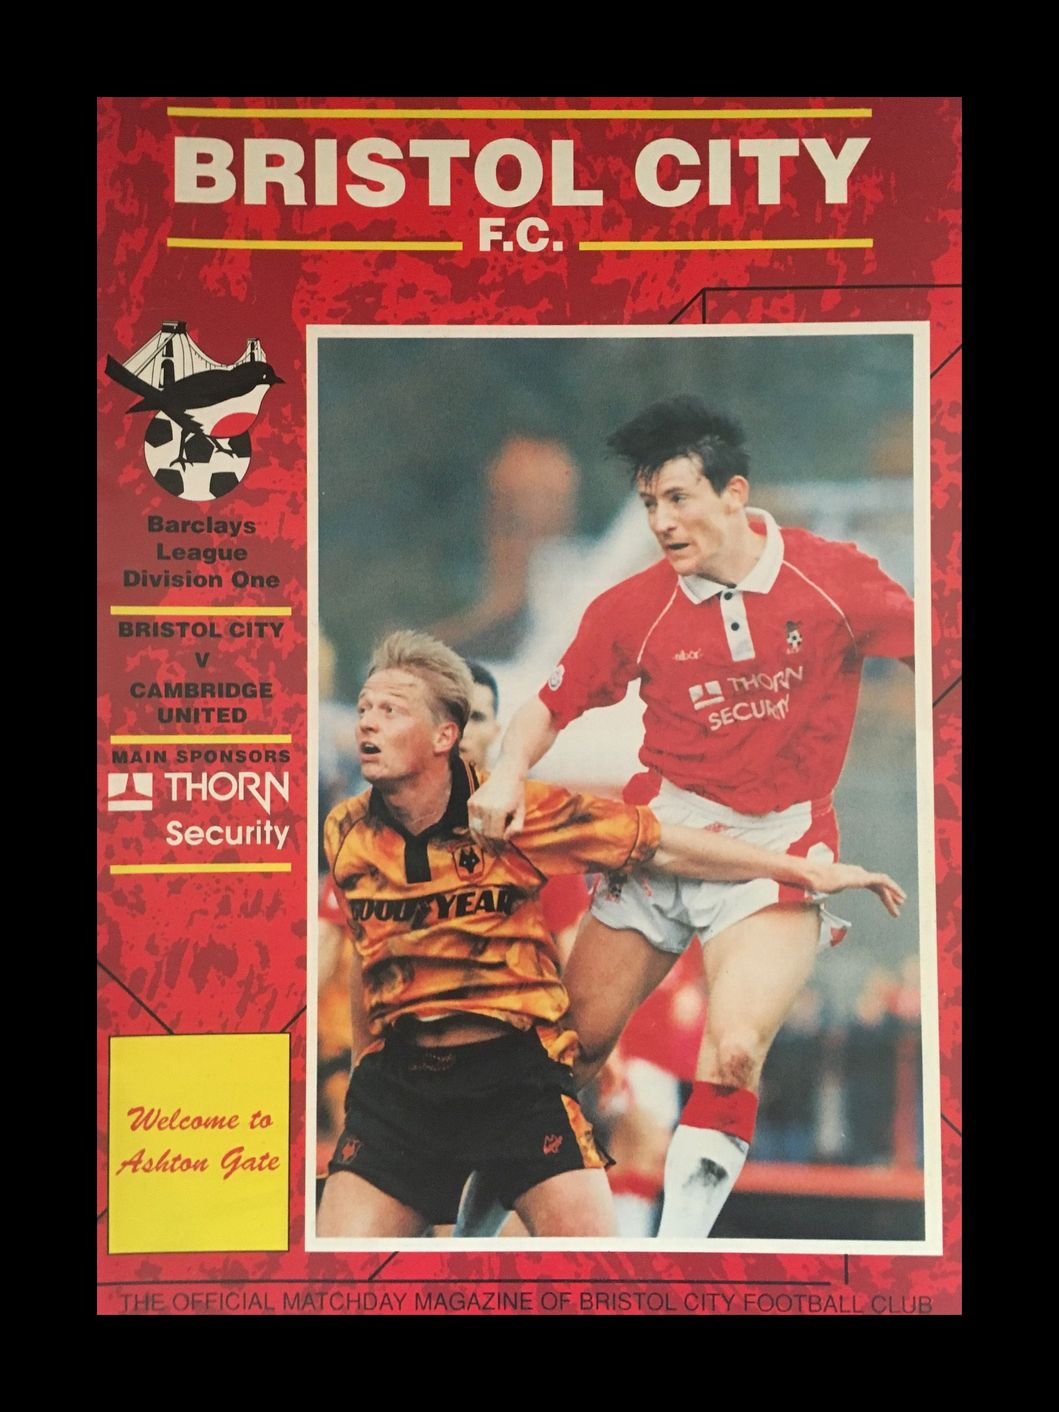 Bristol City v Cambridge United 24-04-1993 Programme